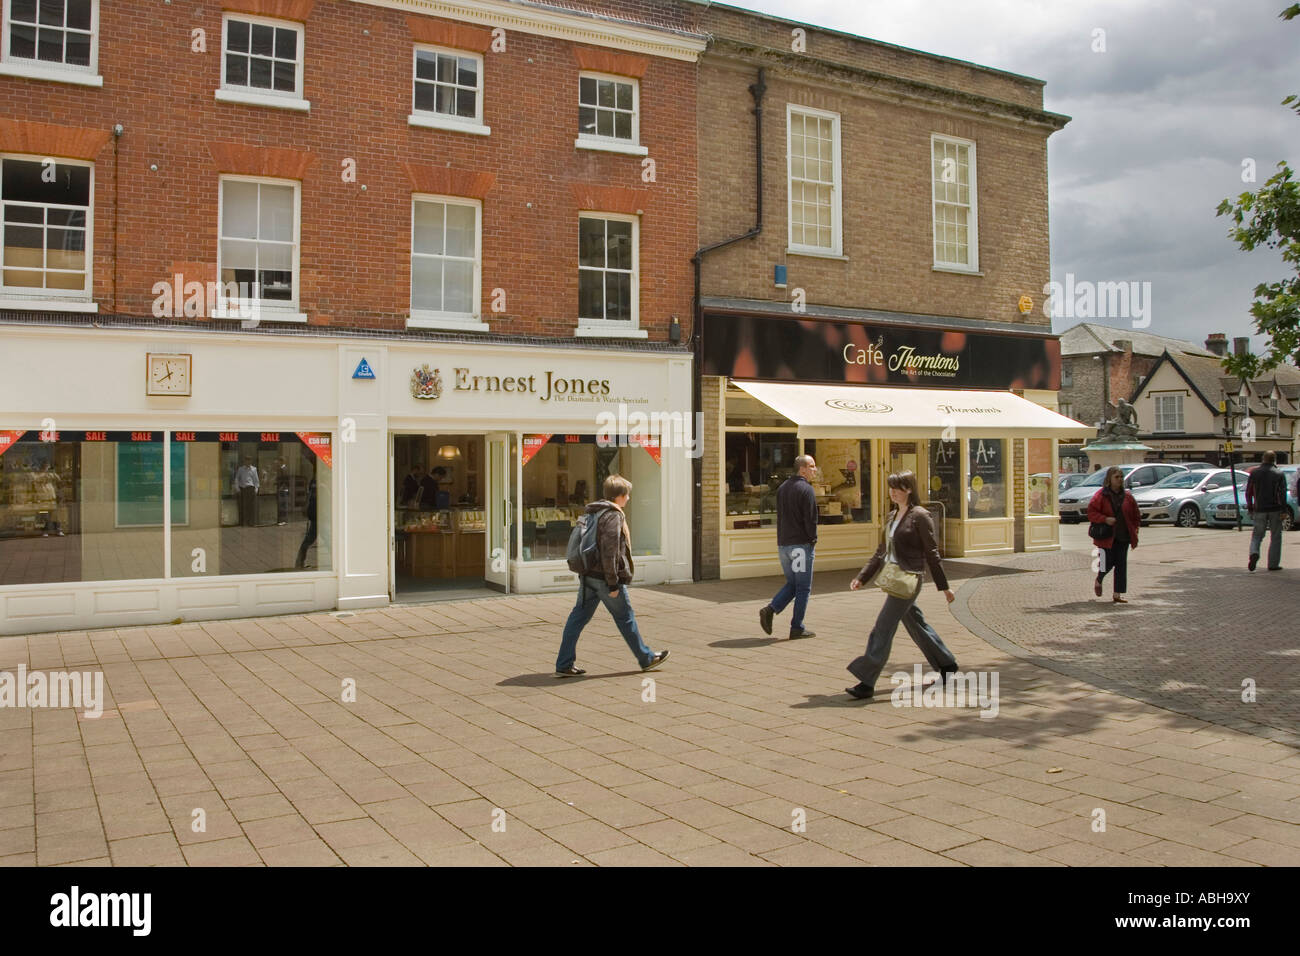 Cornhill area of town centre of  Bury St Edmunds, Suffolk, UK - Stock Image